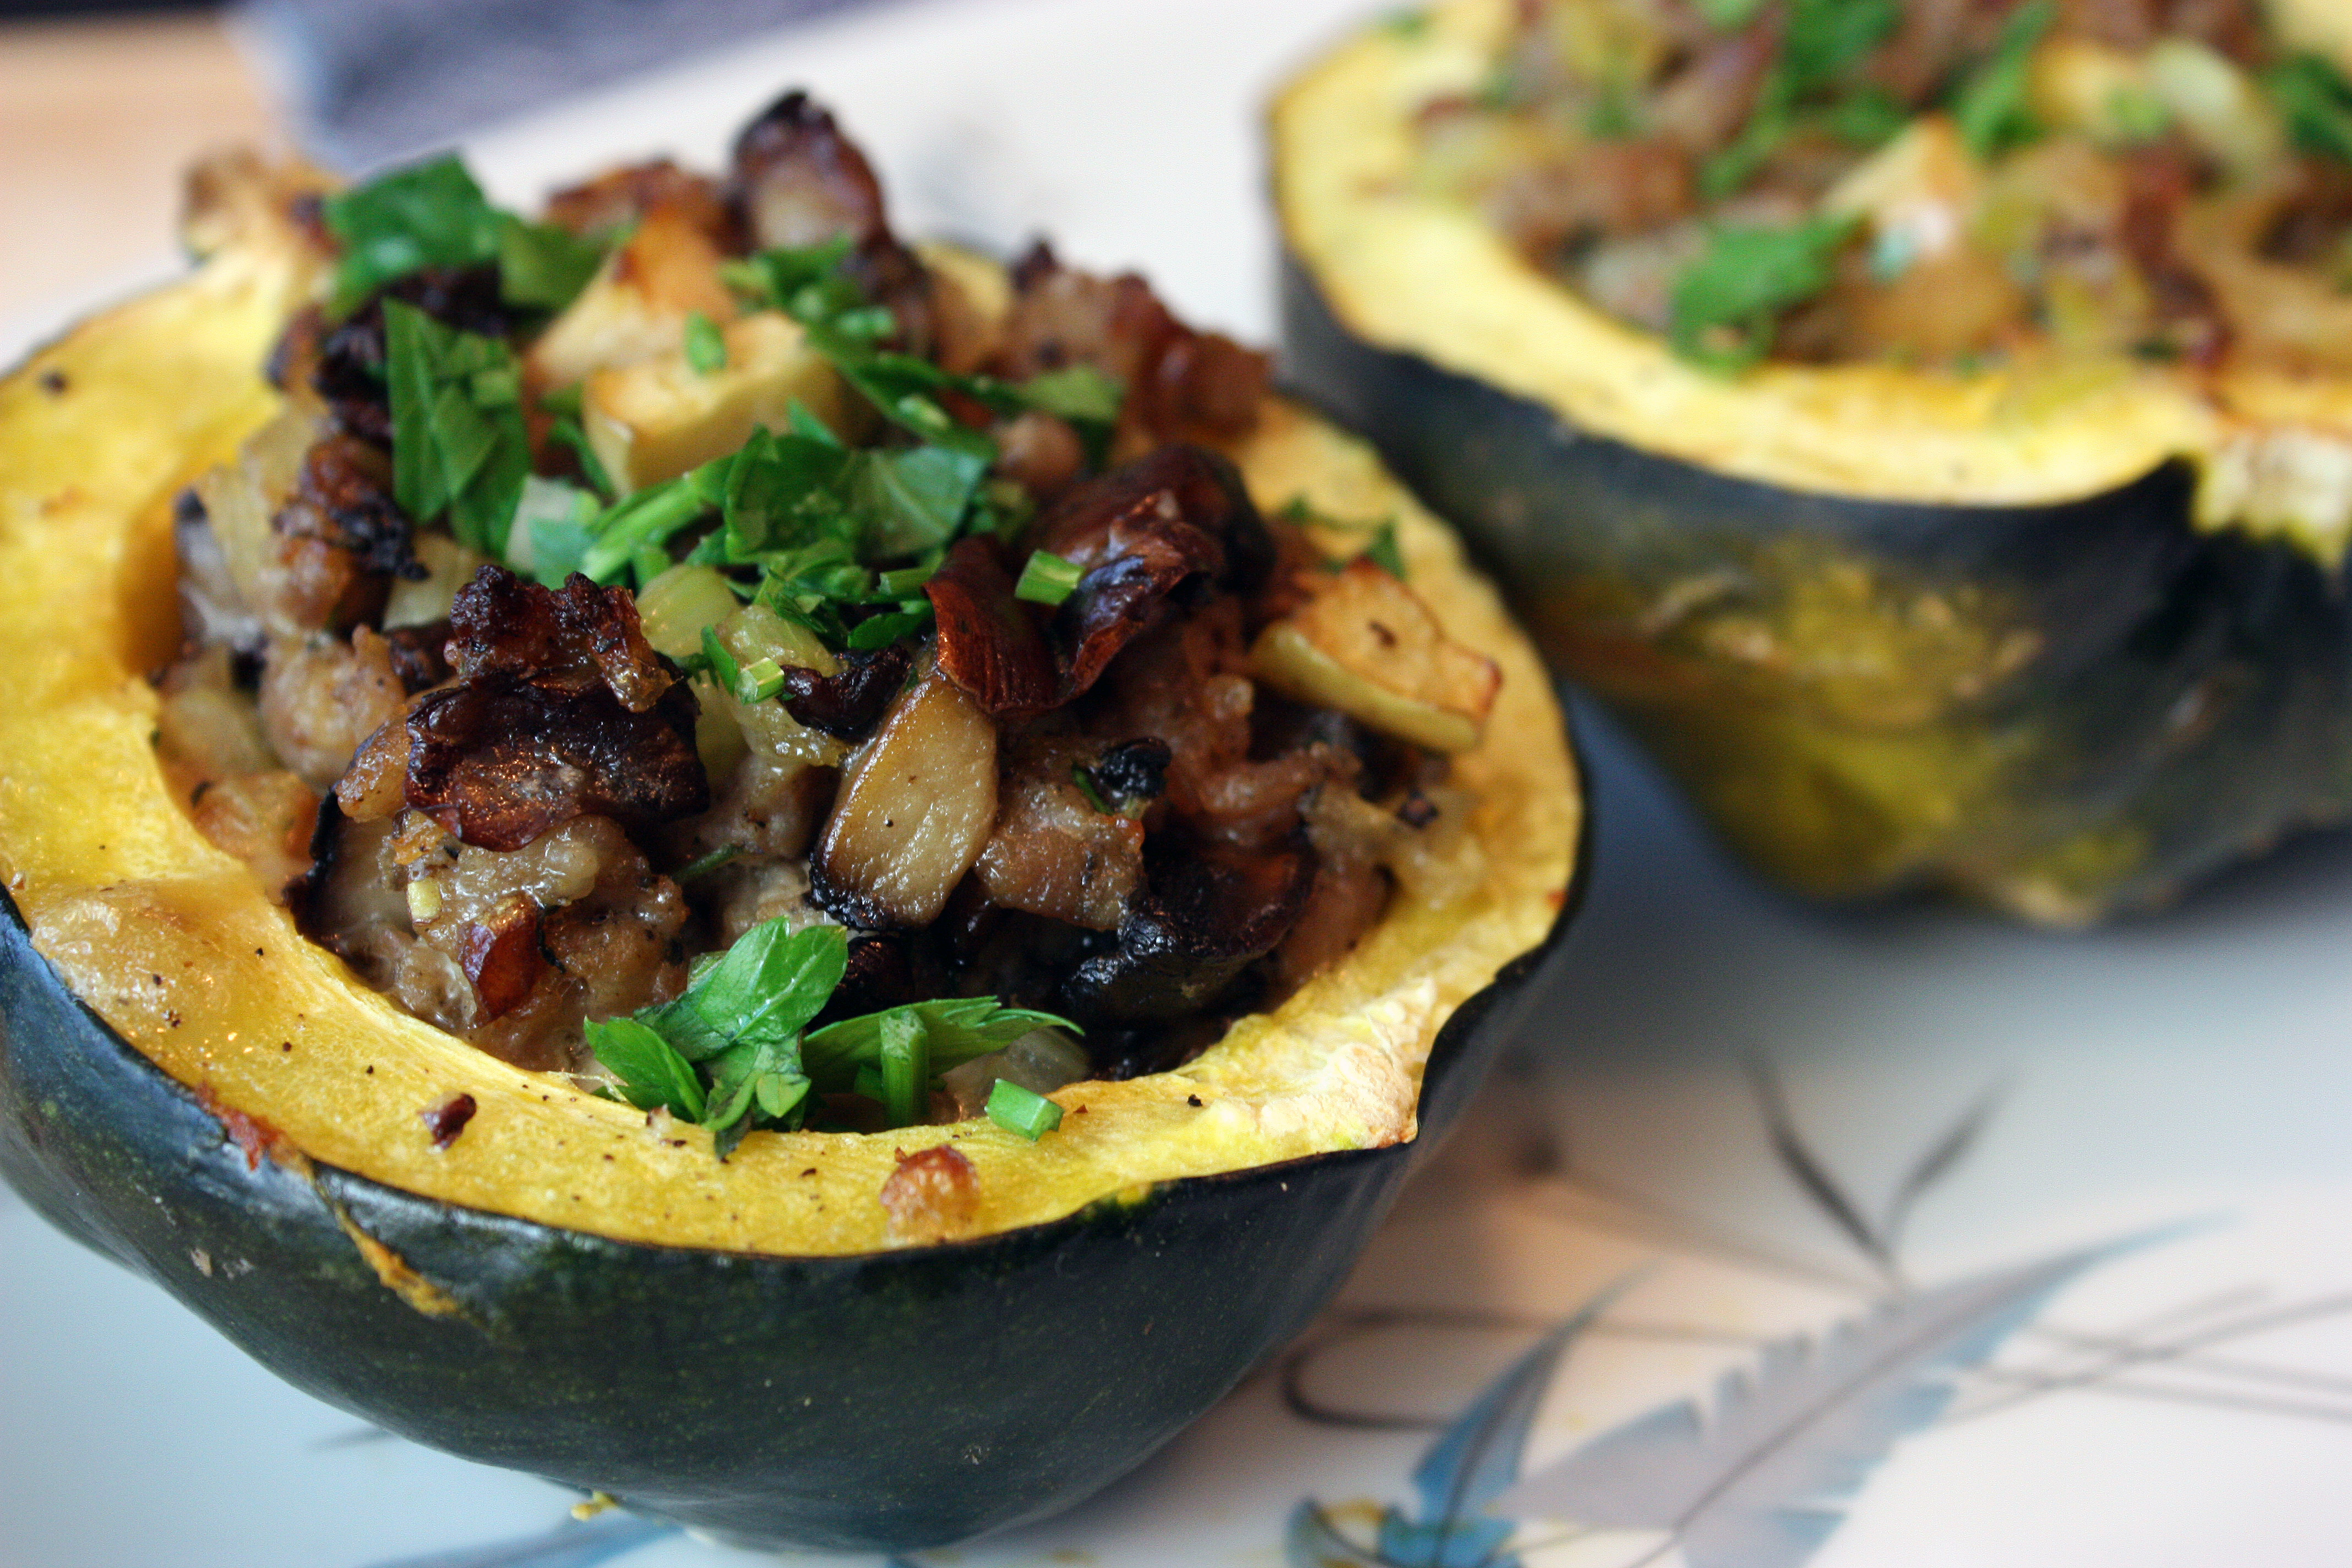 Sausage-Stuffed Acorn Squash at Gluten-Free Homemaker